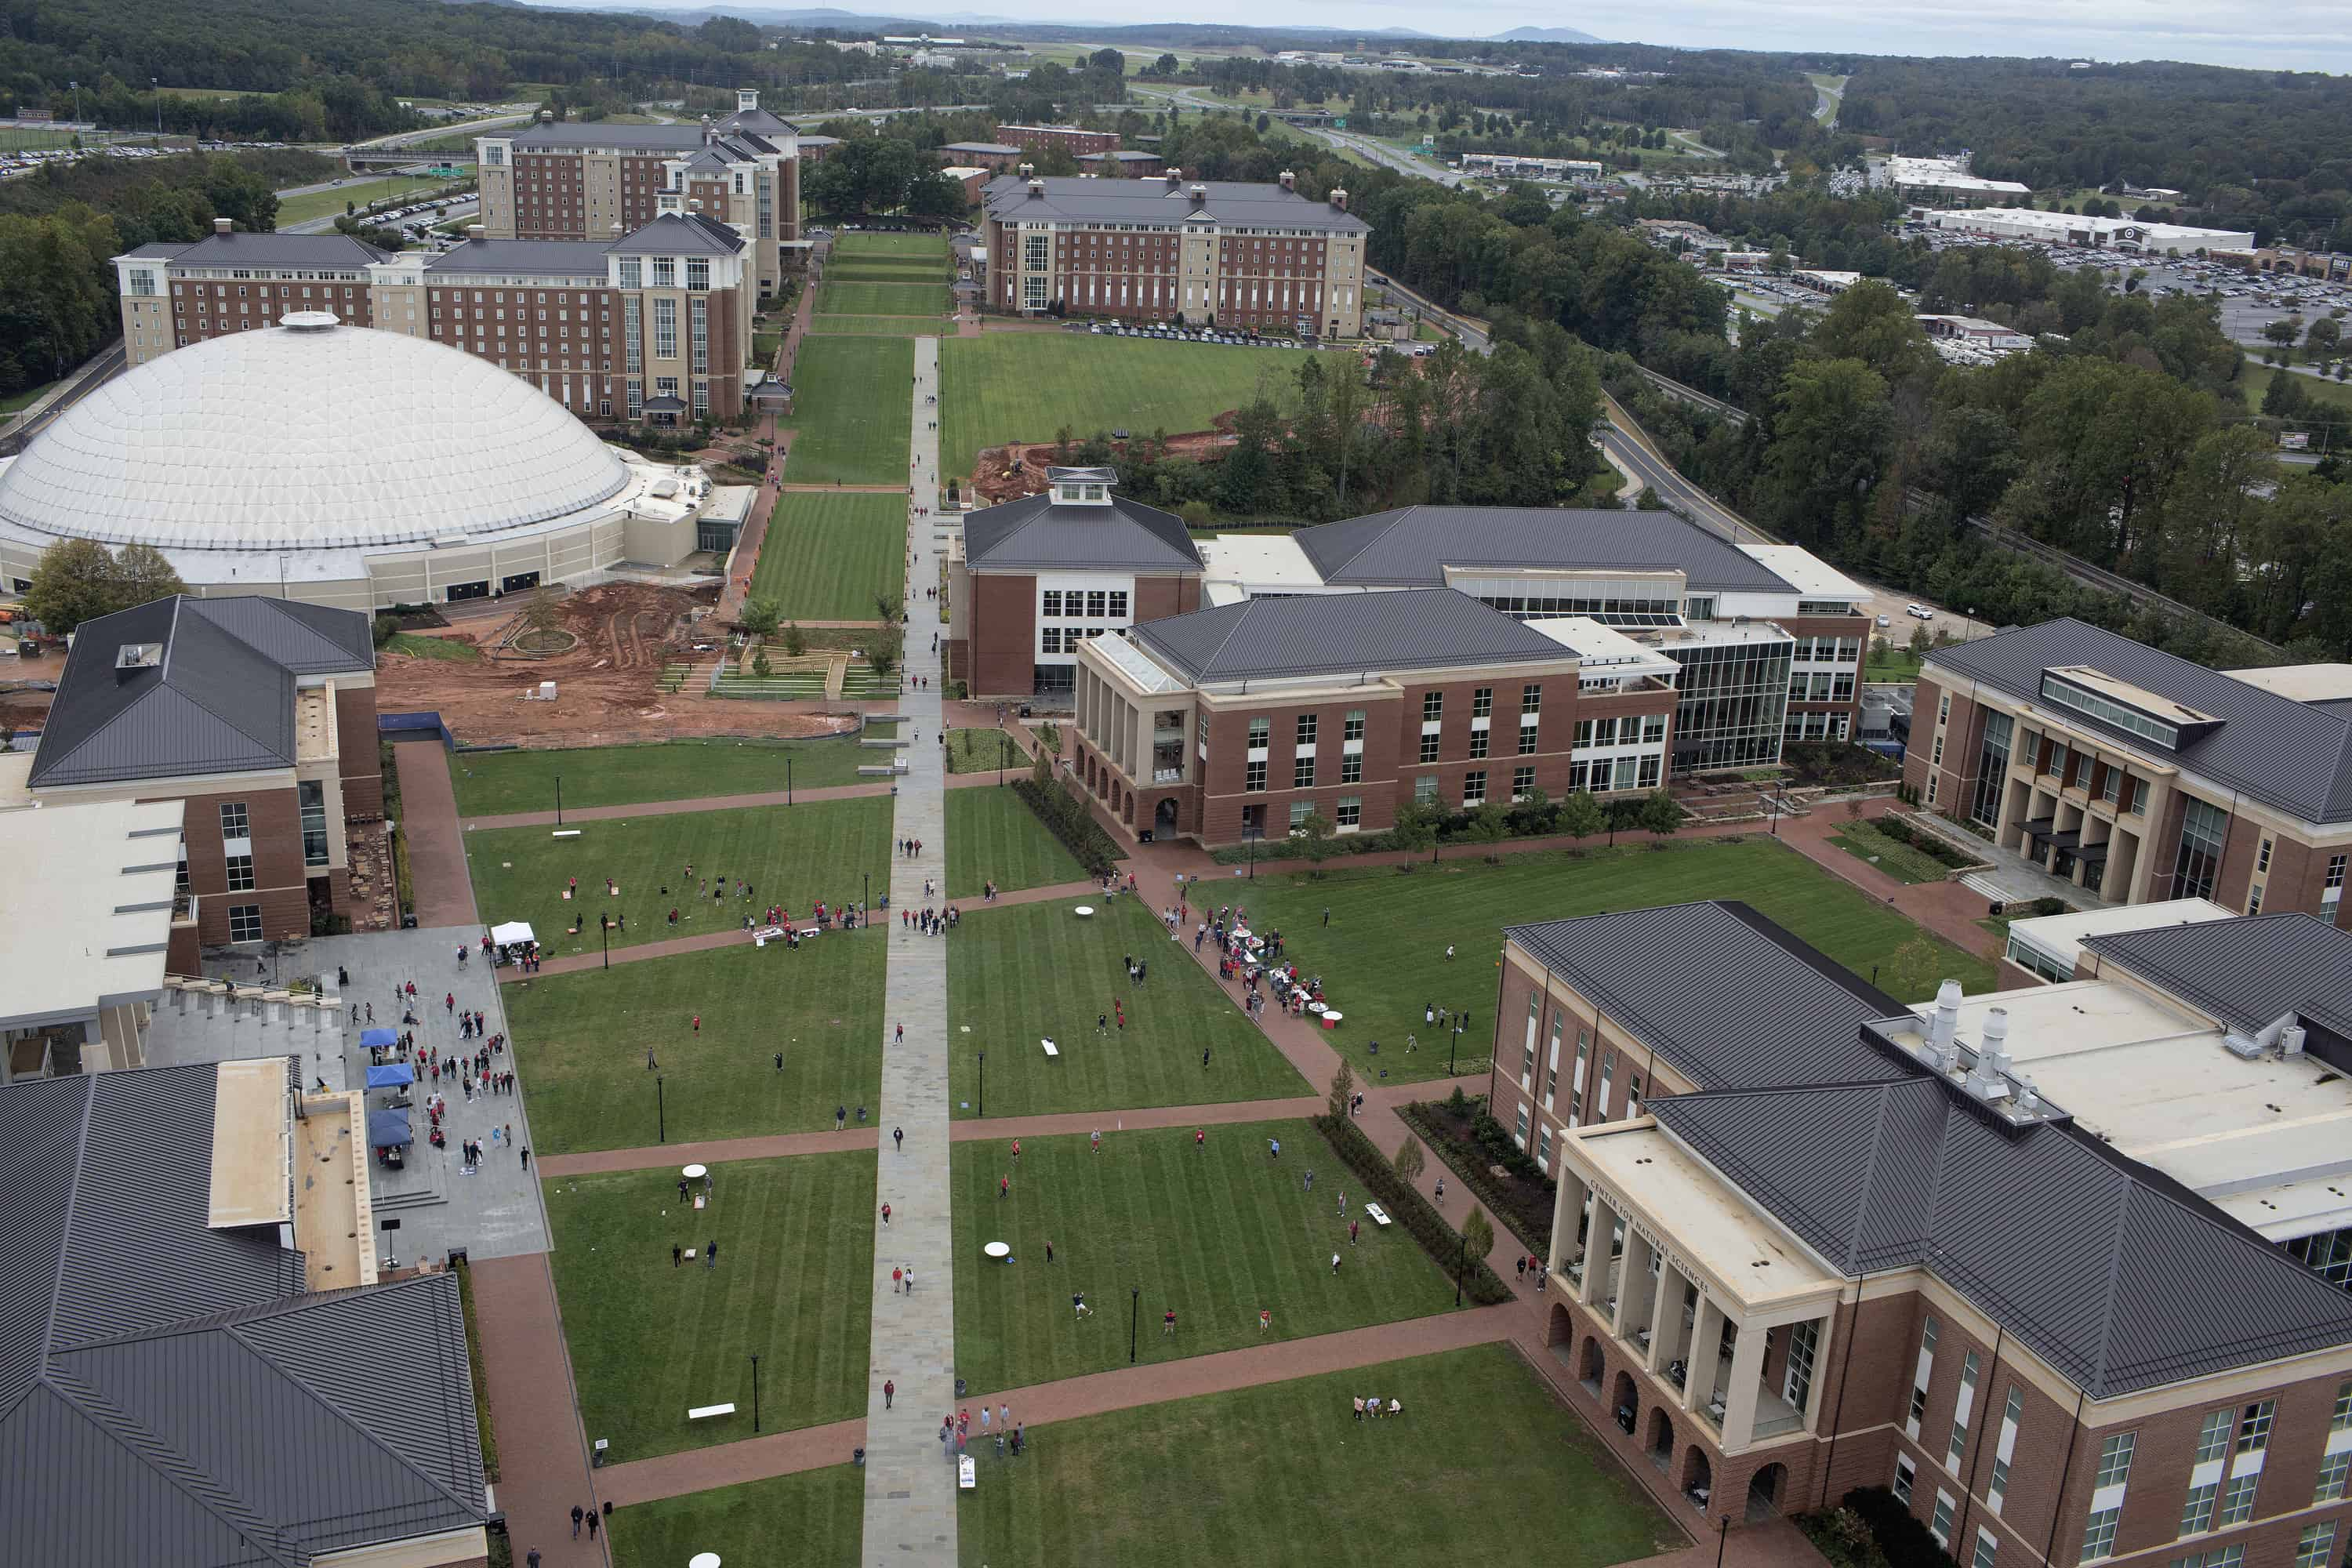 Liberty University has welcomed its students back to campus following spring break. While most studnets have remained home due to the coronavirus.